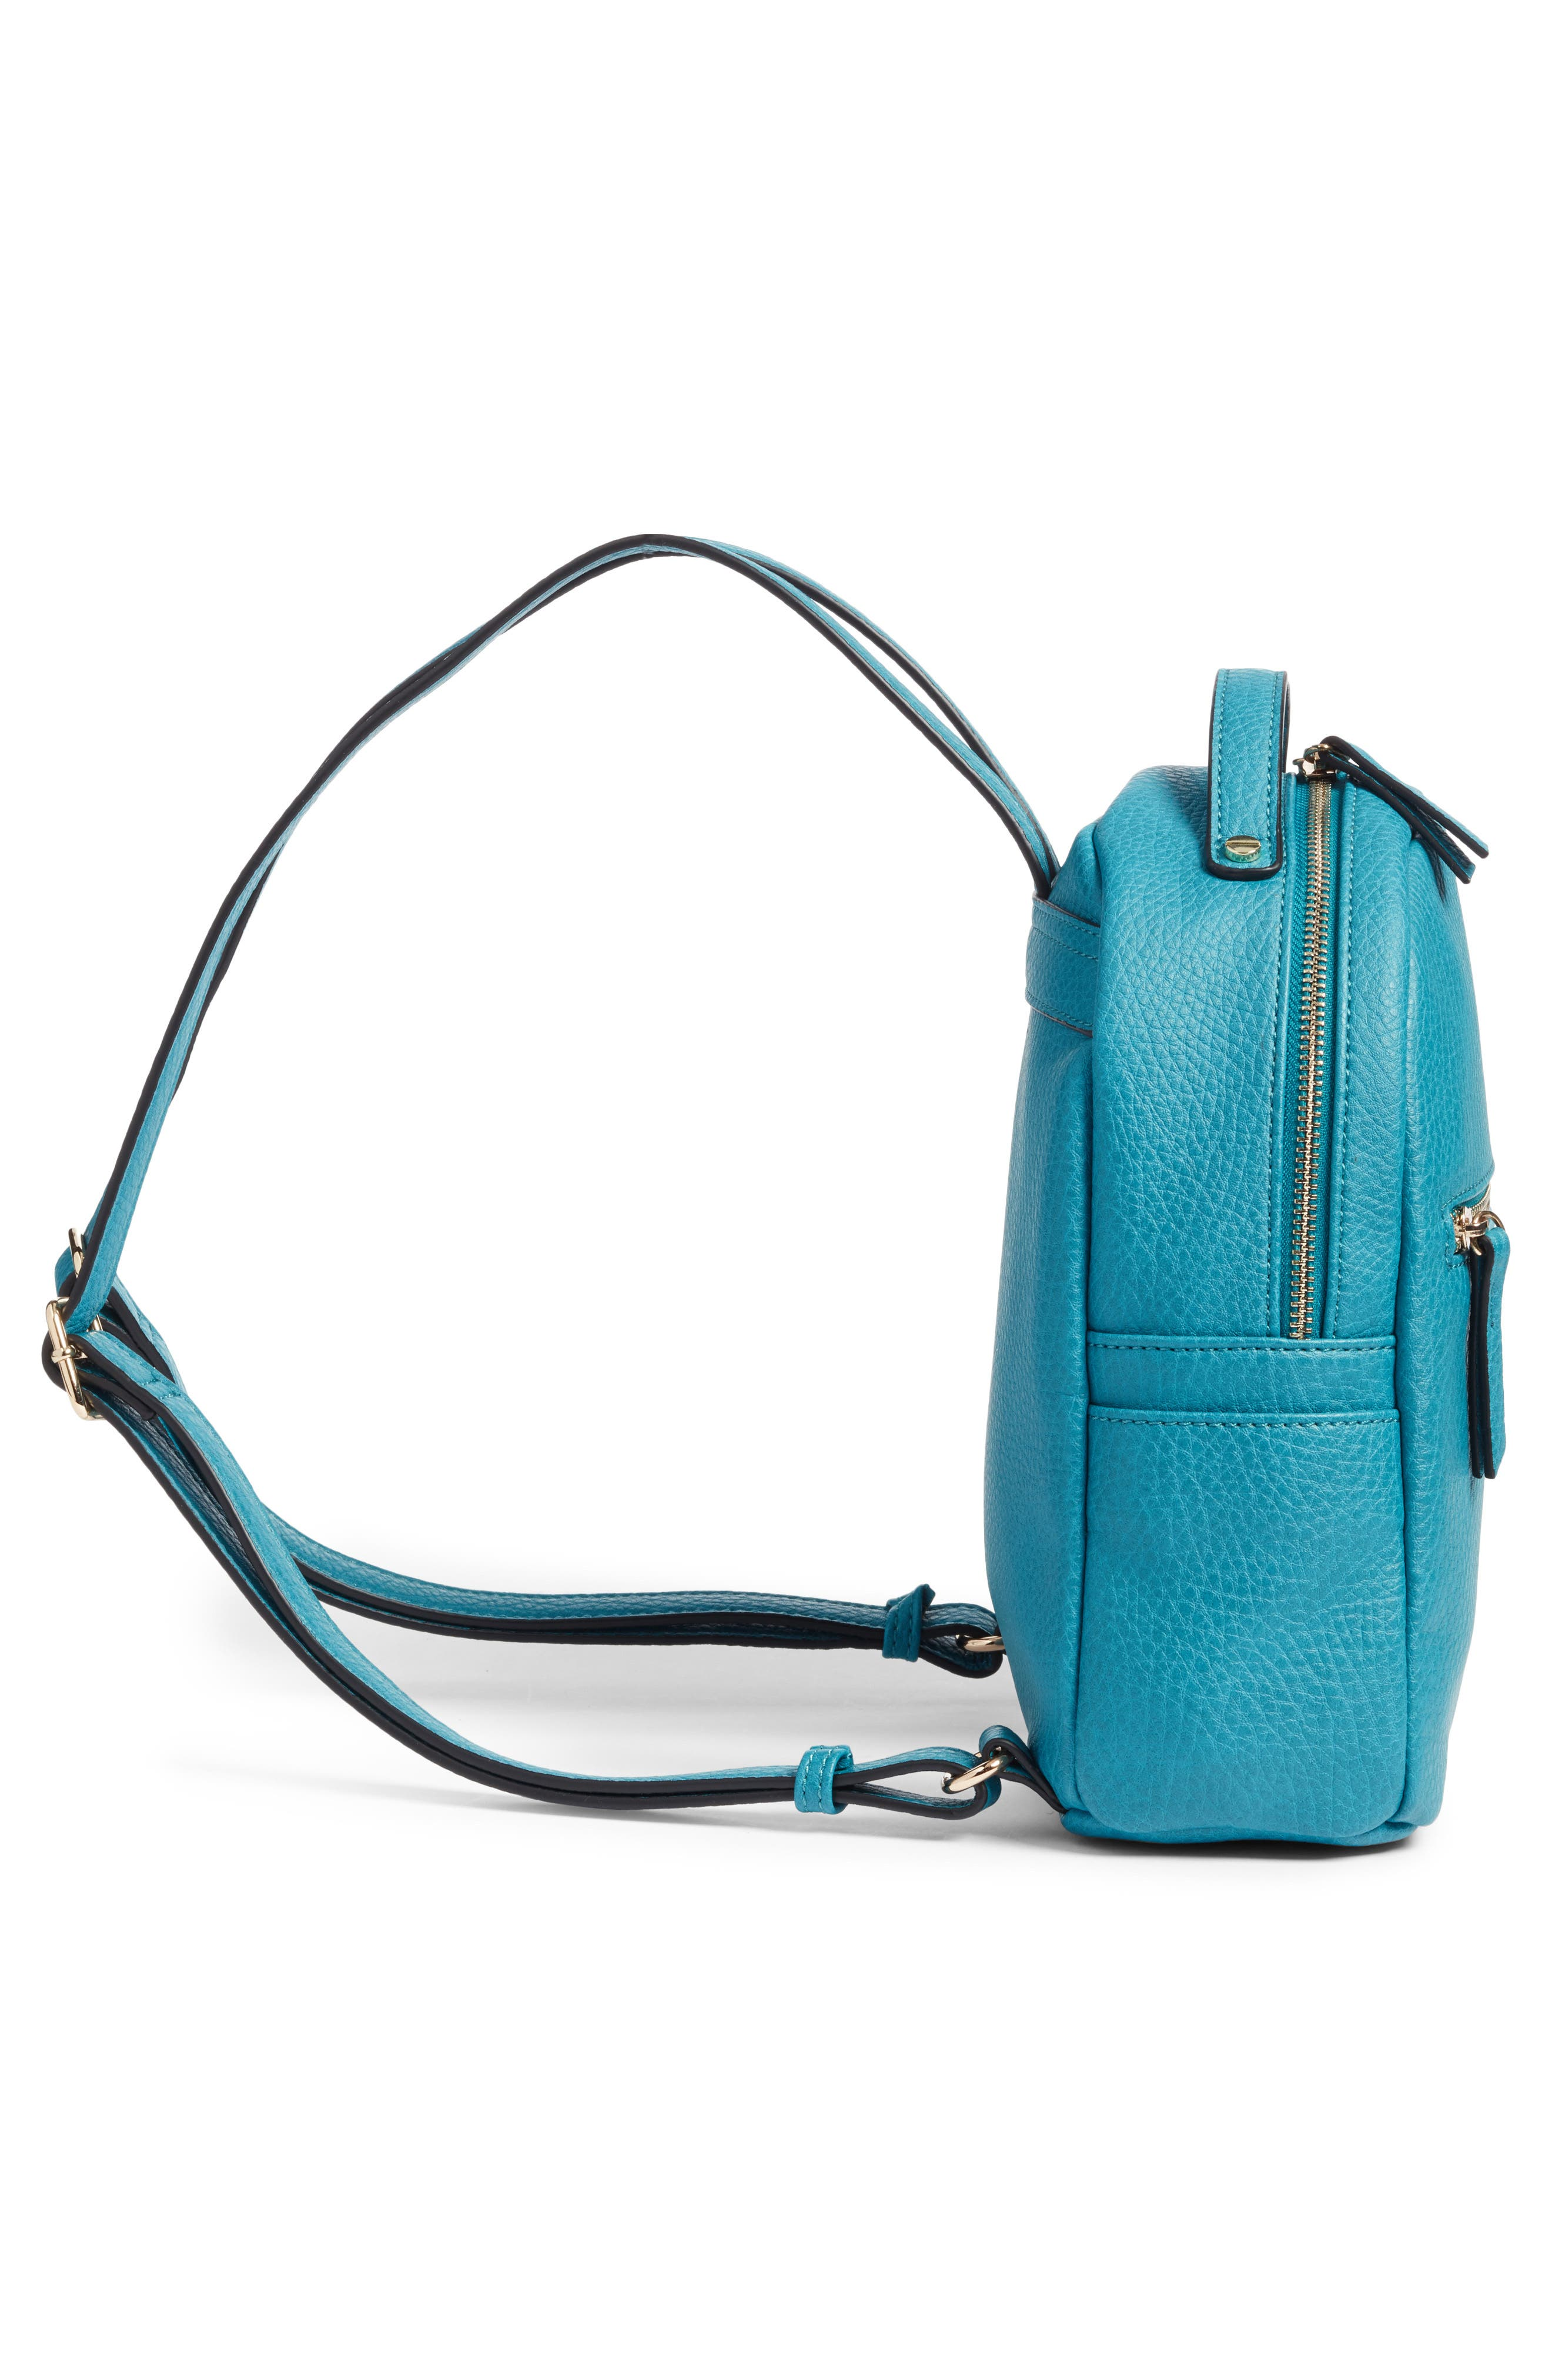 Mali + Lili Vegan Leather Backpack,                             Alternate thumbnail 5, color,                             Blue